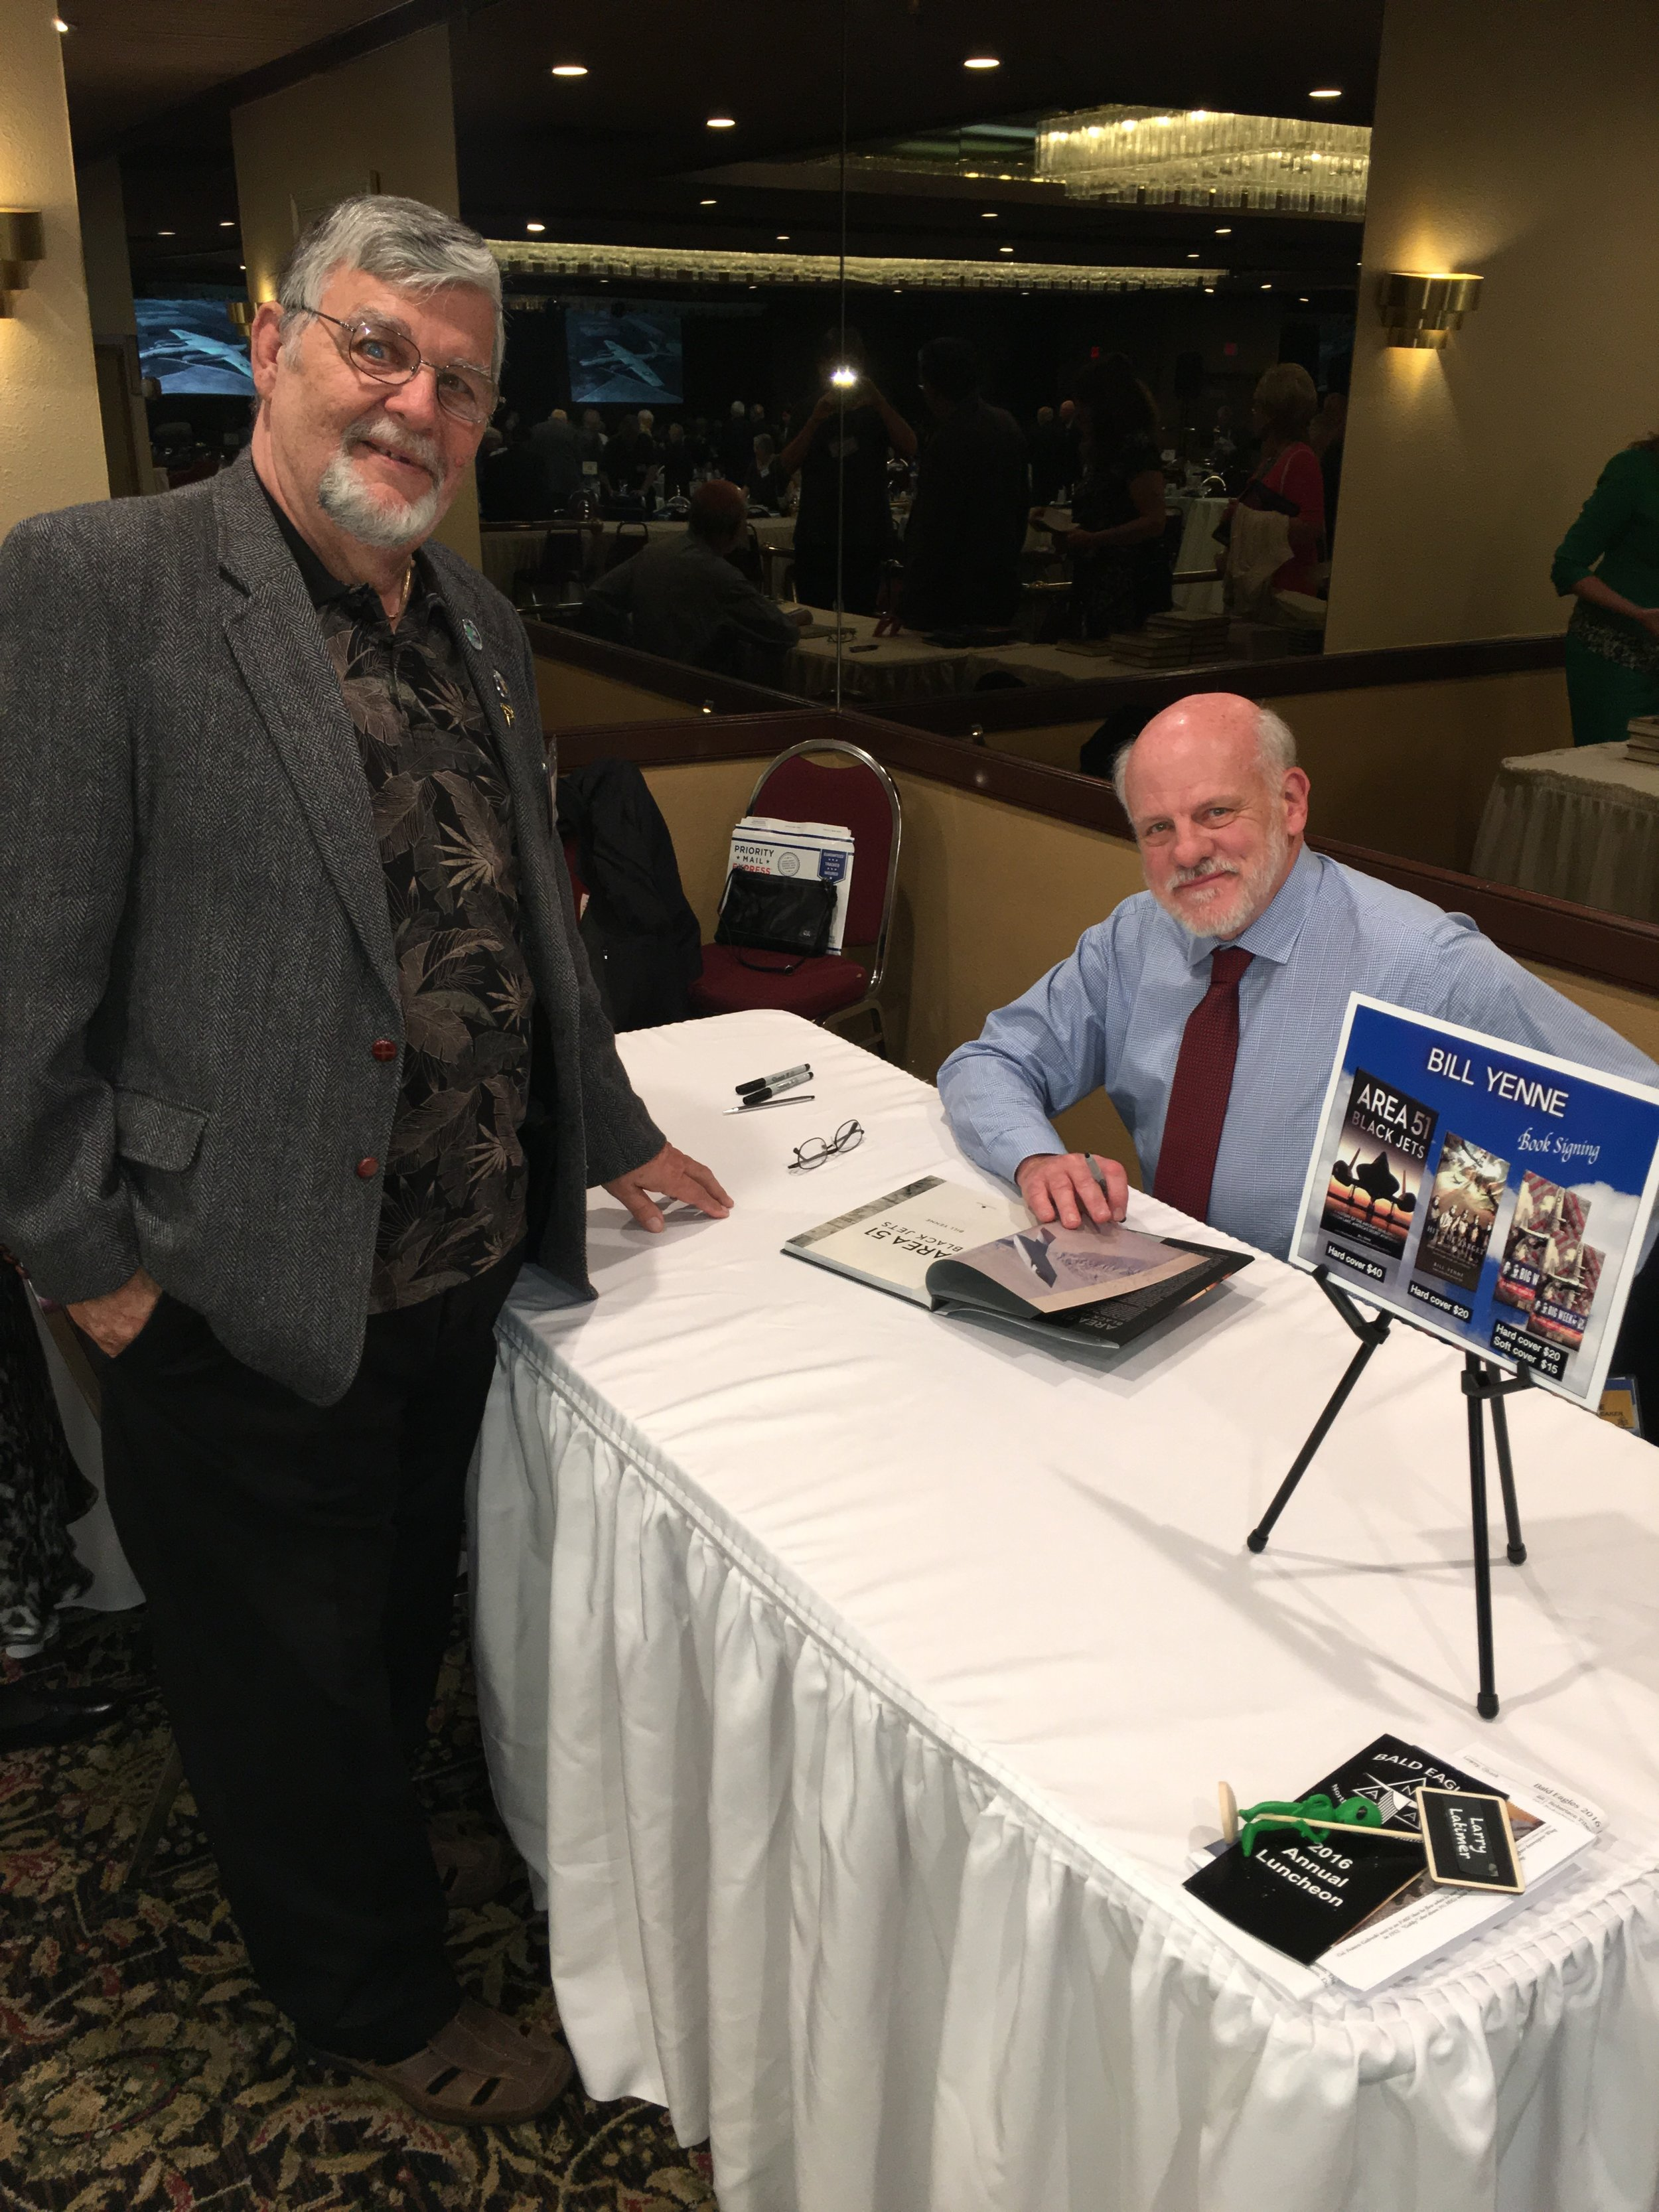 Jerry Blackburn and author Bill Yenne